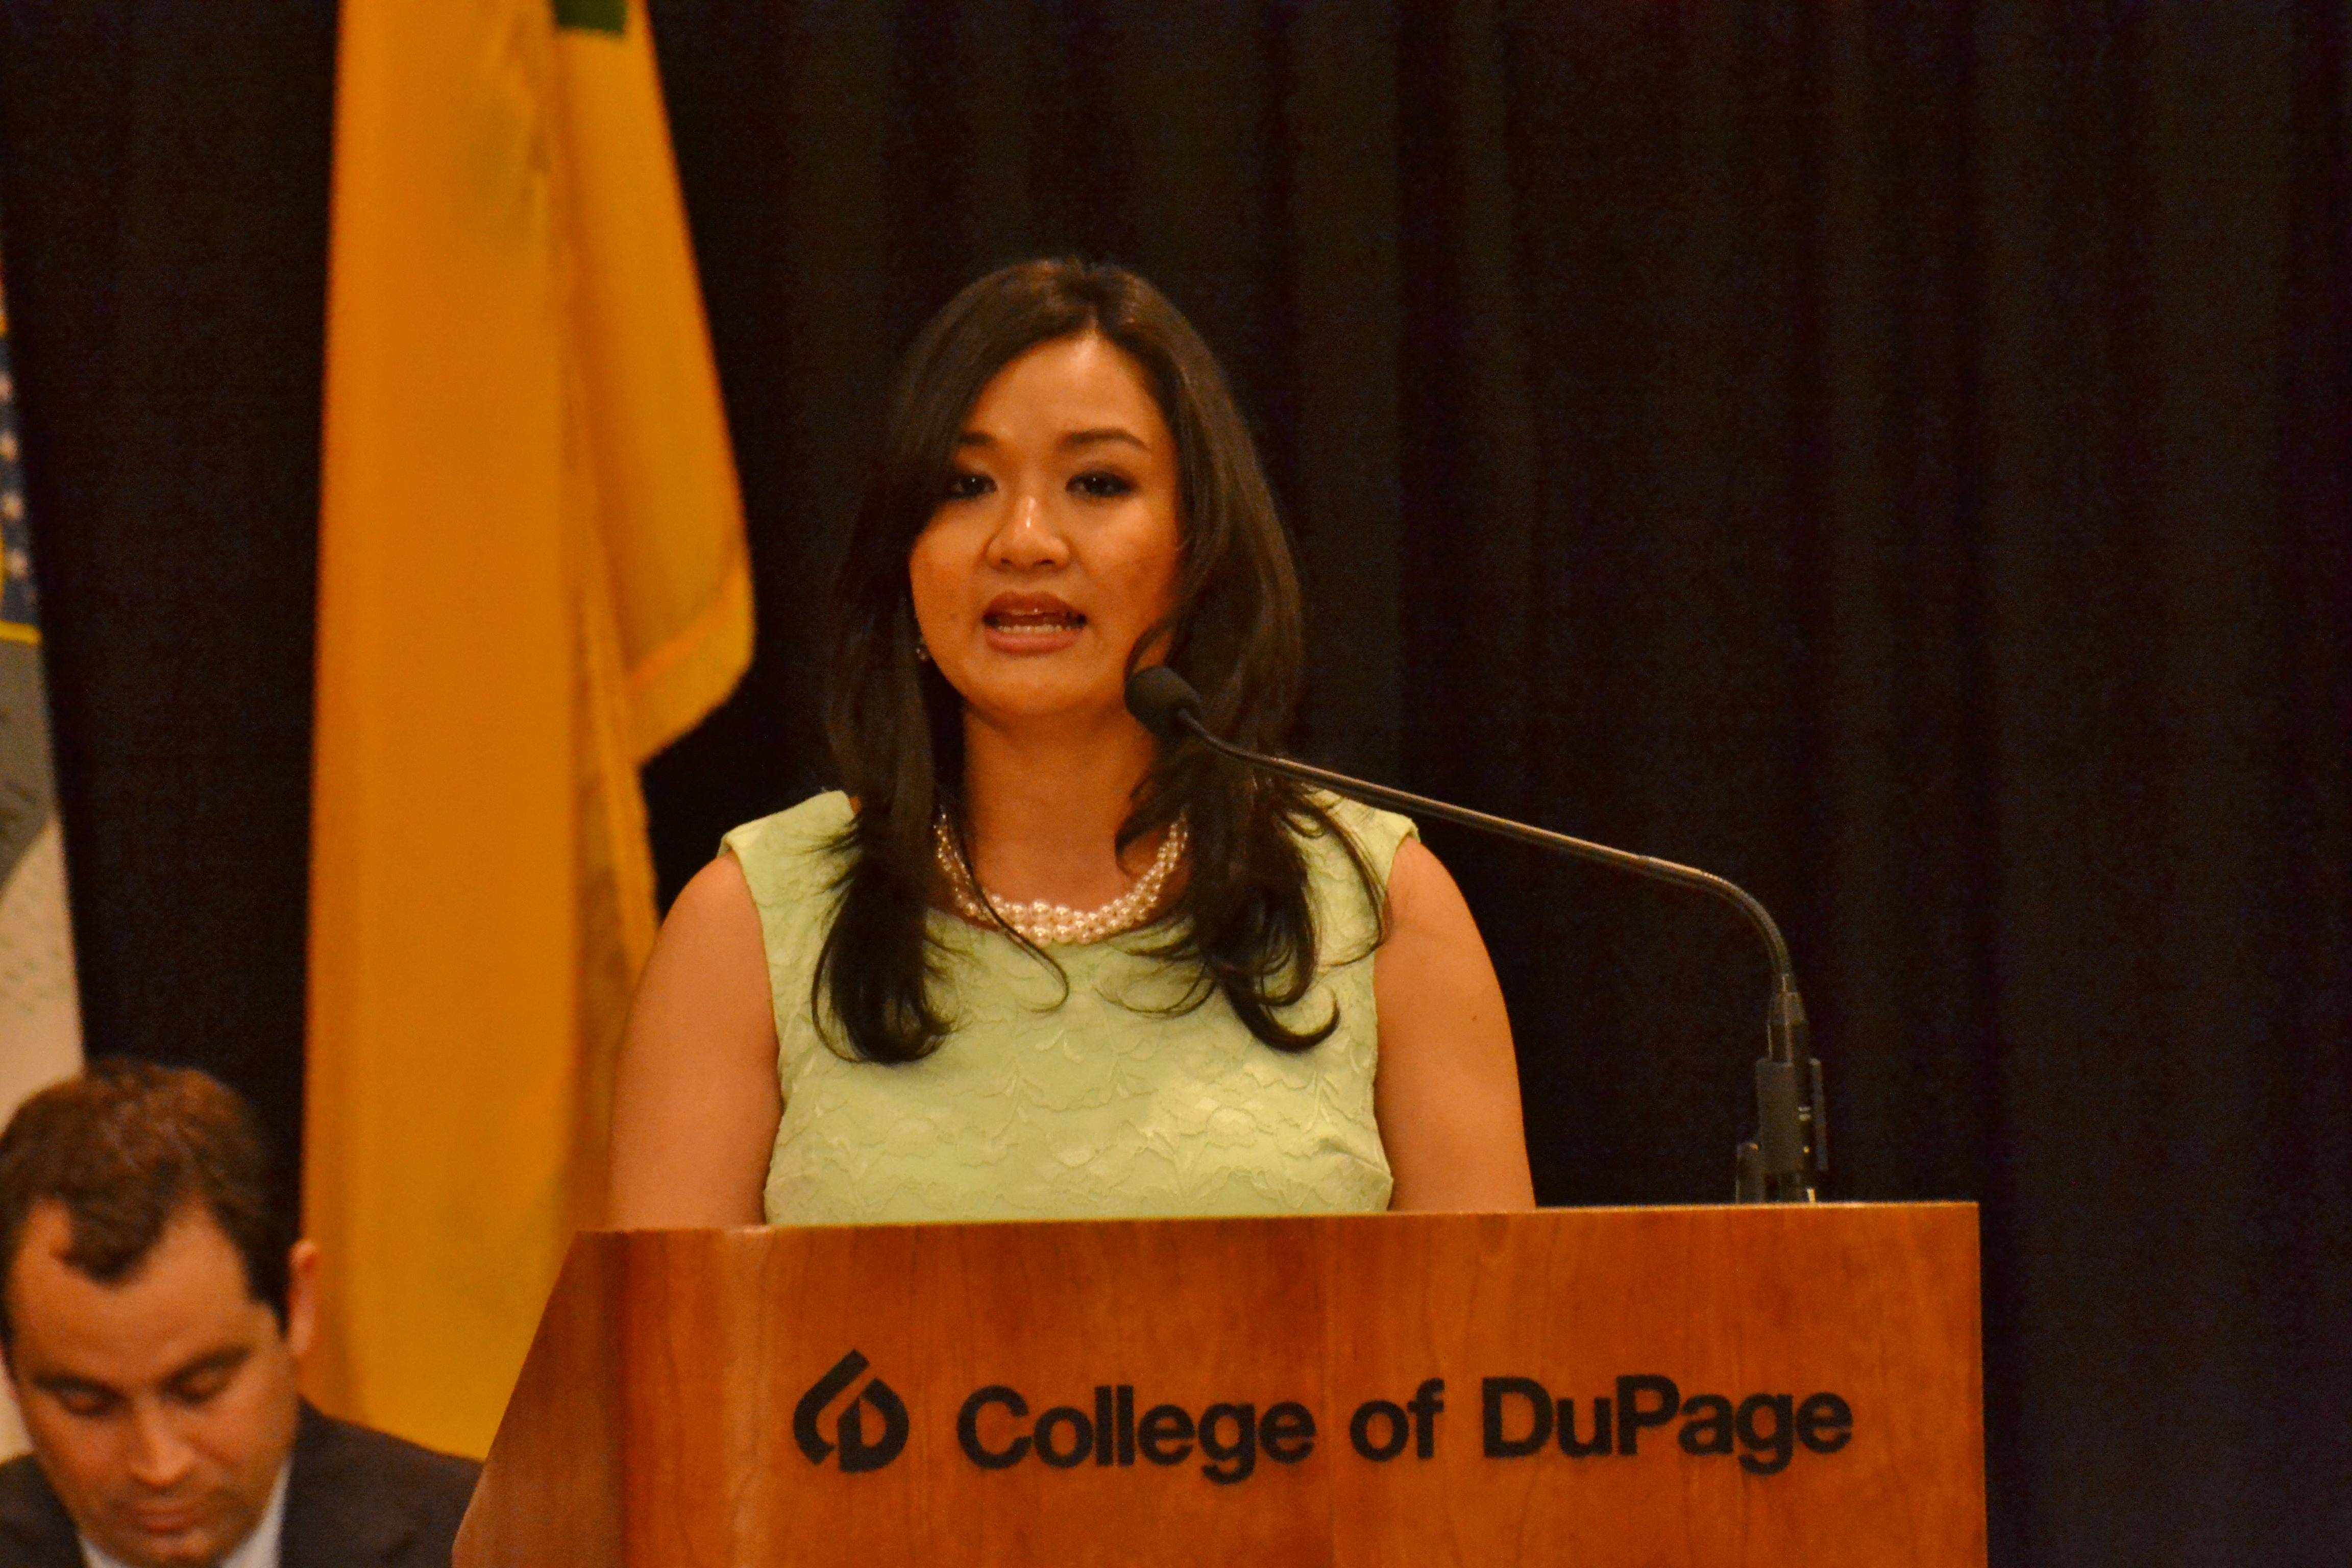 Pictured: GED student Chanbopha Loera addresses her fellow graduates May 18 at College of DuPage. Loera is one of 13 recipients of this year's Jump Start Scholarship,